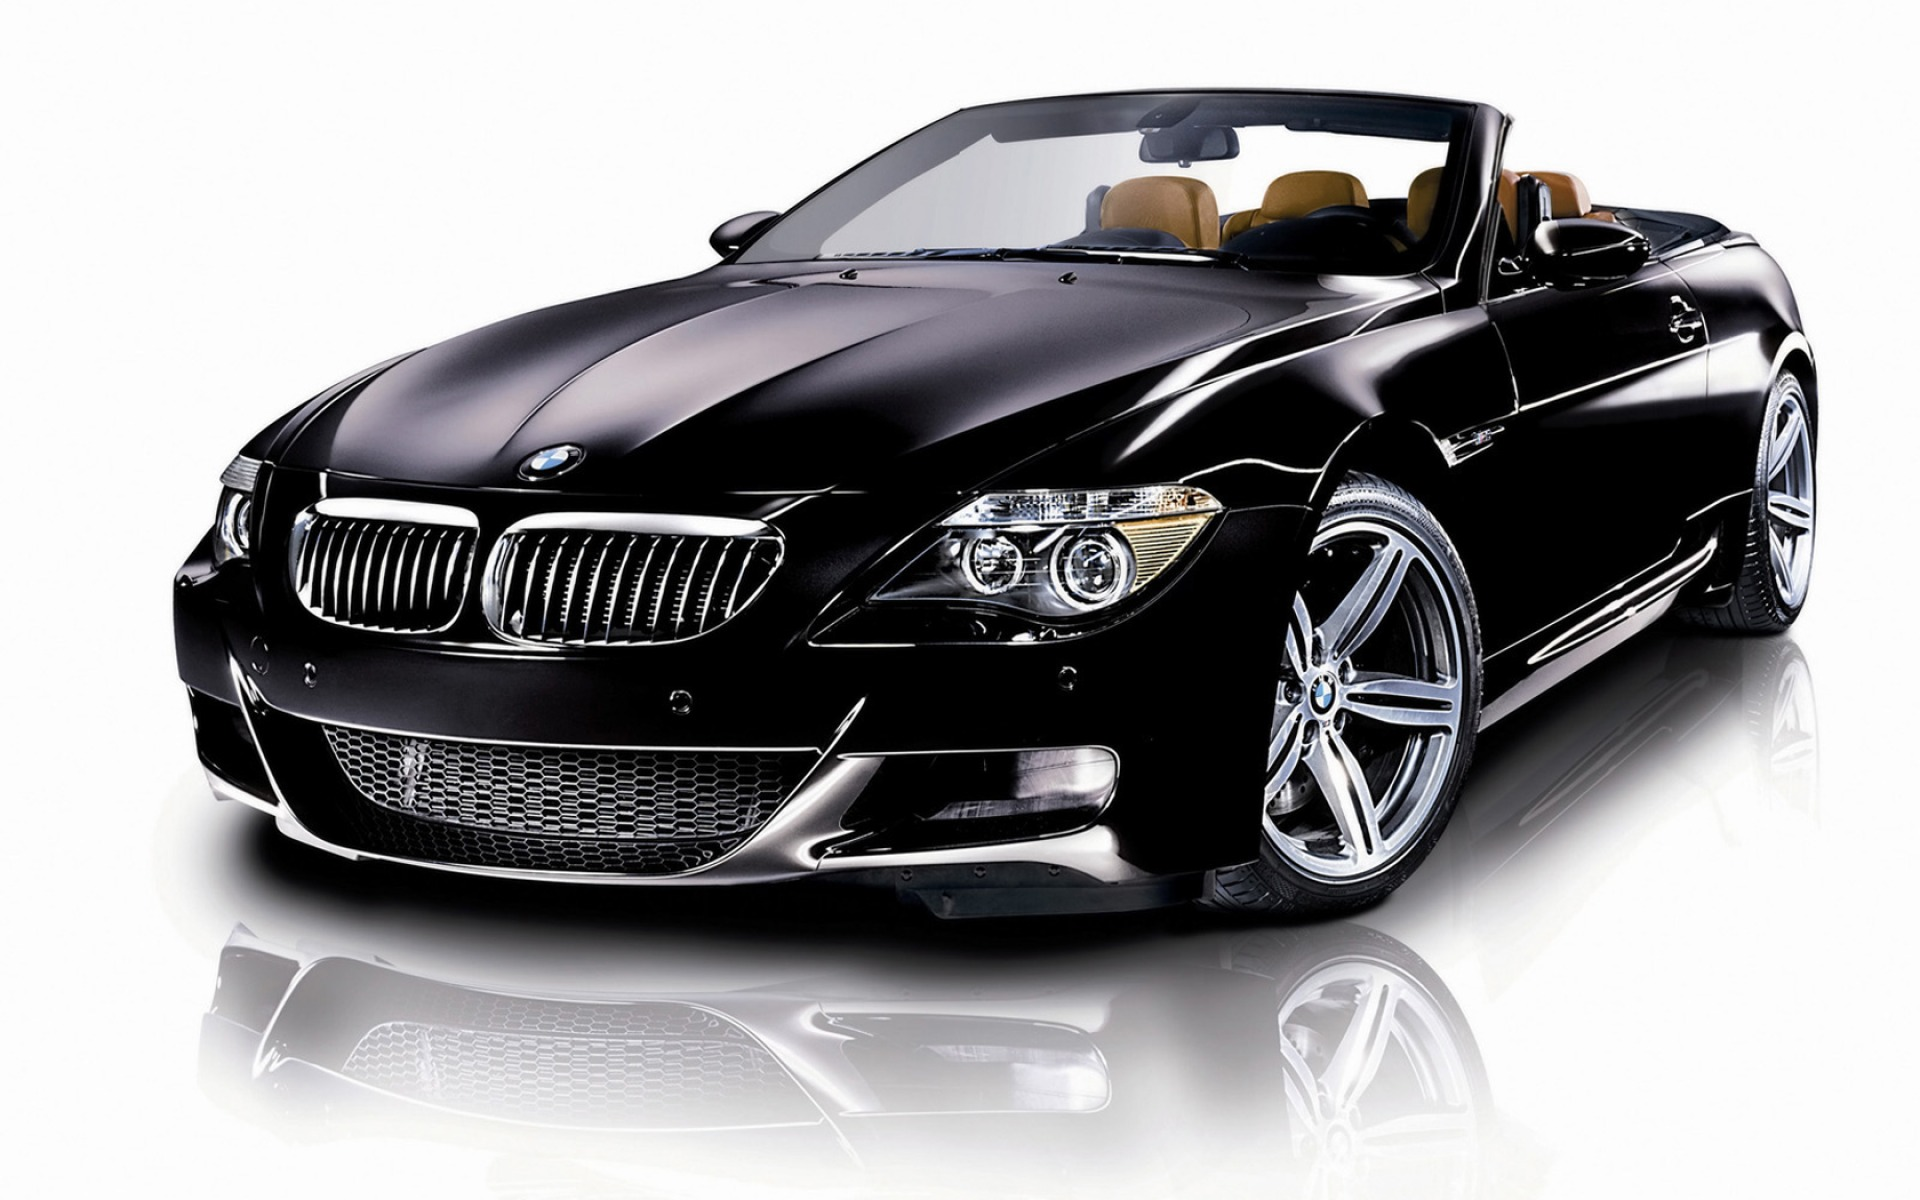 Ultrablogus  Winsome Bmw Car Wallpaper Wallpapers For Free Download About   With Inspiring Bmw M Convertible Wallpaper Bmw Cars With Awesome Interior Of Dodge Charger Also Lincoln Navigator  Interior In Addition  Honda Crv Interior And Bmw X  Interior As Well As Hyundai Elentra Interior Additionally Honda Accord  Interior From Allfreedownloadcom With Ultrablogus  Inspiring Bmw Car Wallpaper Wallpapers For Free Download About   With Awesome Bmw M Convertible Wallpaper Bmw Cars And Winsome Interior Of Dodge Charger Also Lincoln Navigator  Interior In Addition  Honda Crv Interior From Allfreedownloadcom